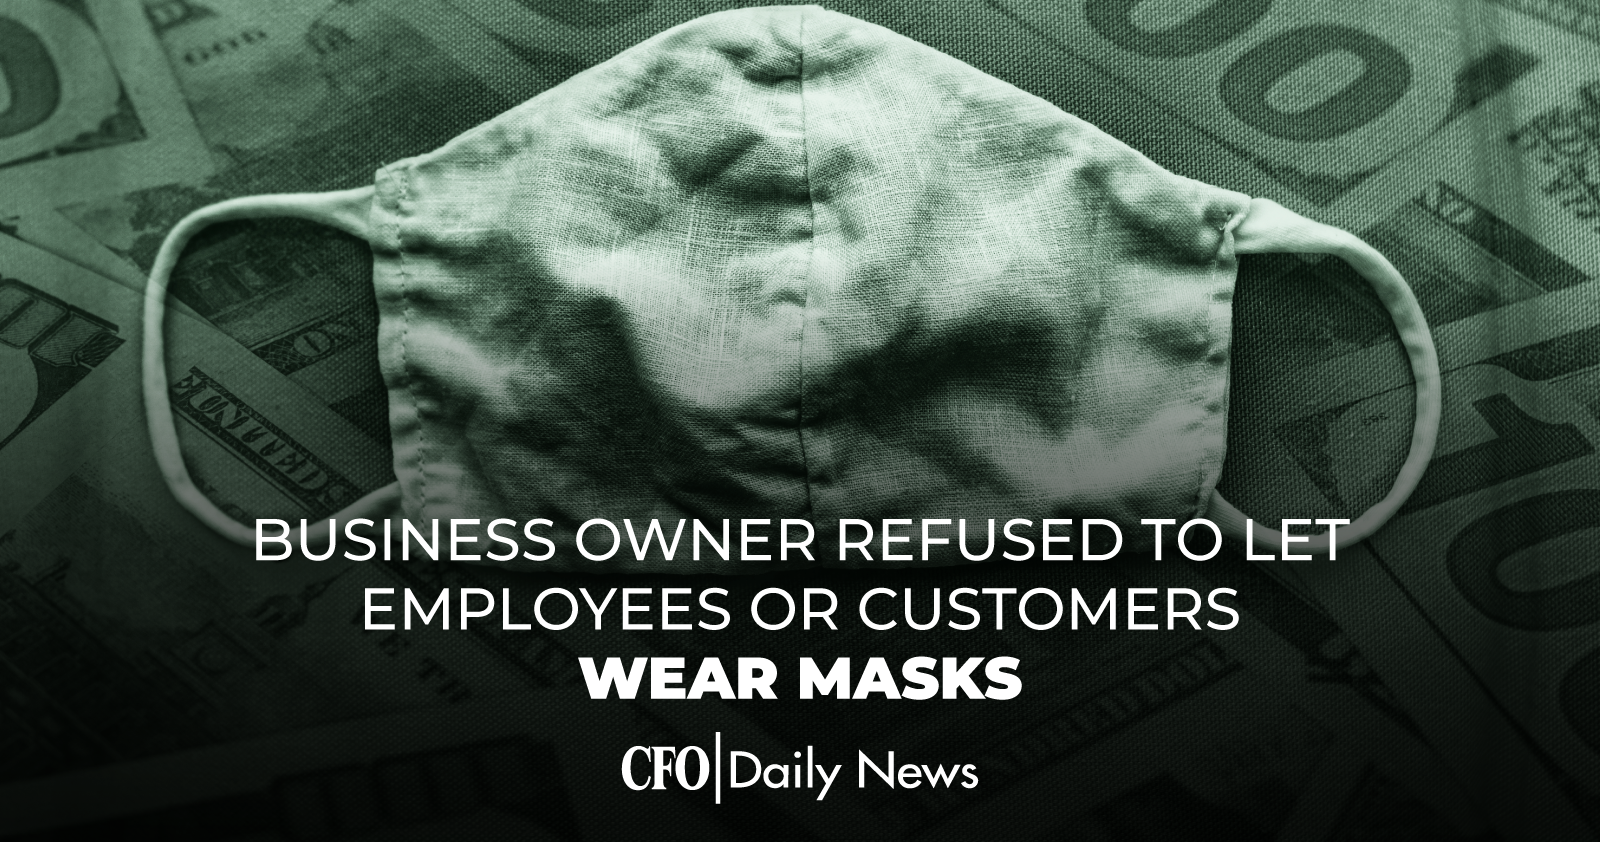 business owner refused to let employees or customers wear masks